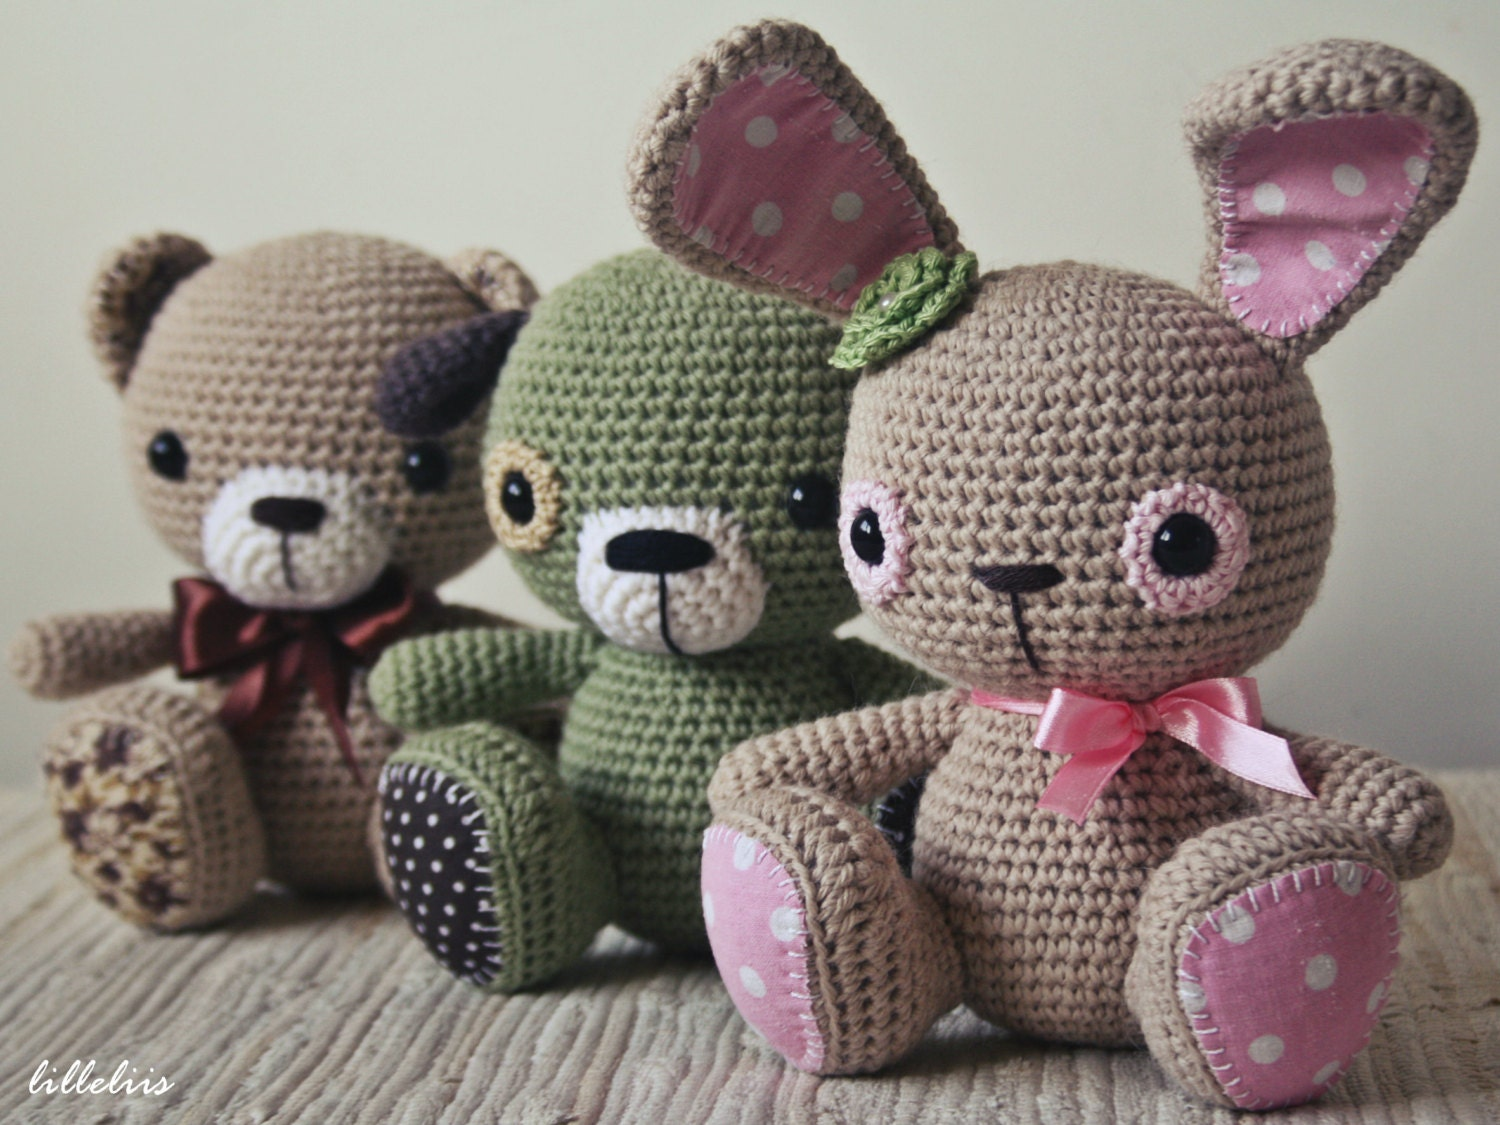 Amigurumi Askina Etsy : PATTERN Amigurumi cuties bunny puppy and teddy by lilleliis